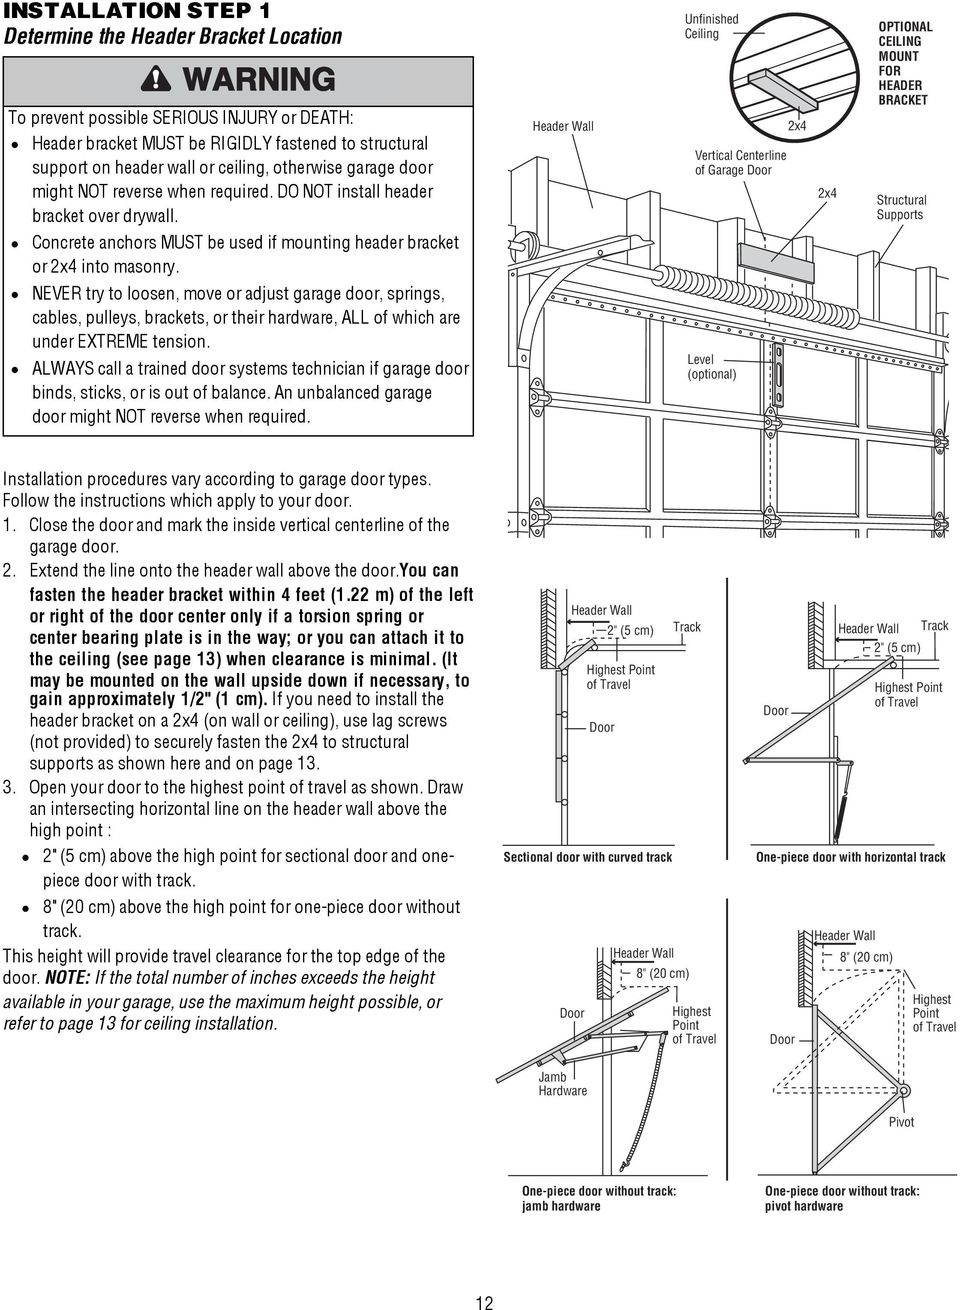 Header Wall Unfinished Ceiling Vertical Centerline of Garage Door 2x4 2x4 OPTIONAL CEILING MOUNT FOR HEADER BRACKET Structural Supports Concrete anchors MUST be used if mounting header bracket or 2x4